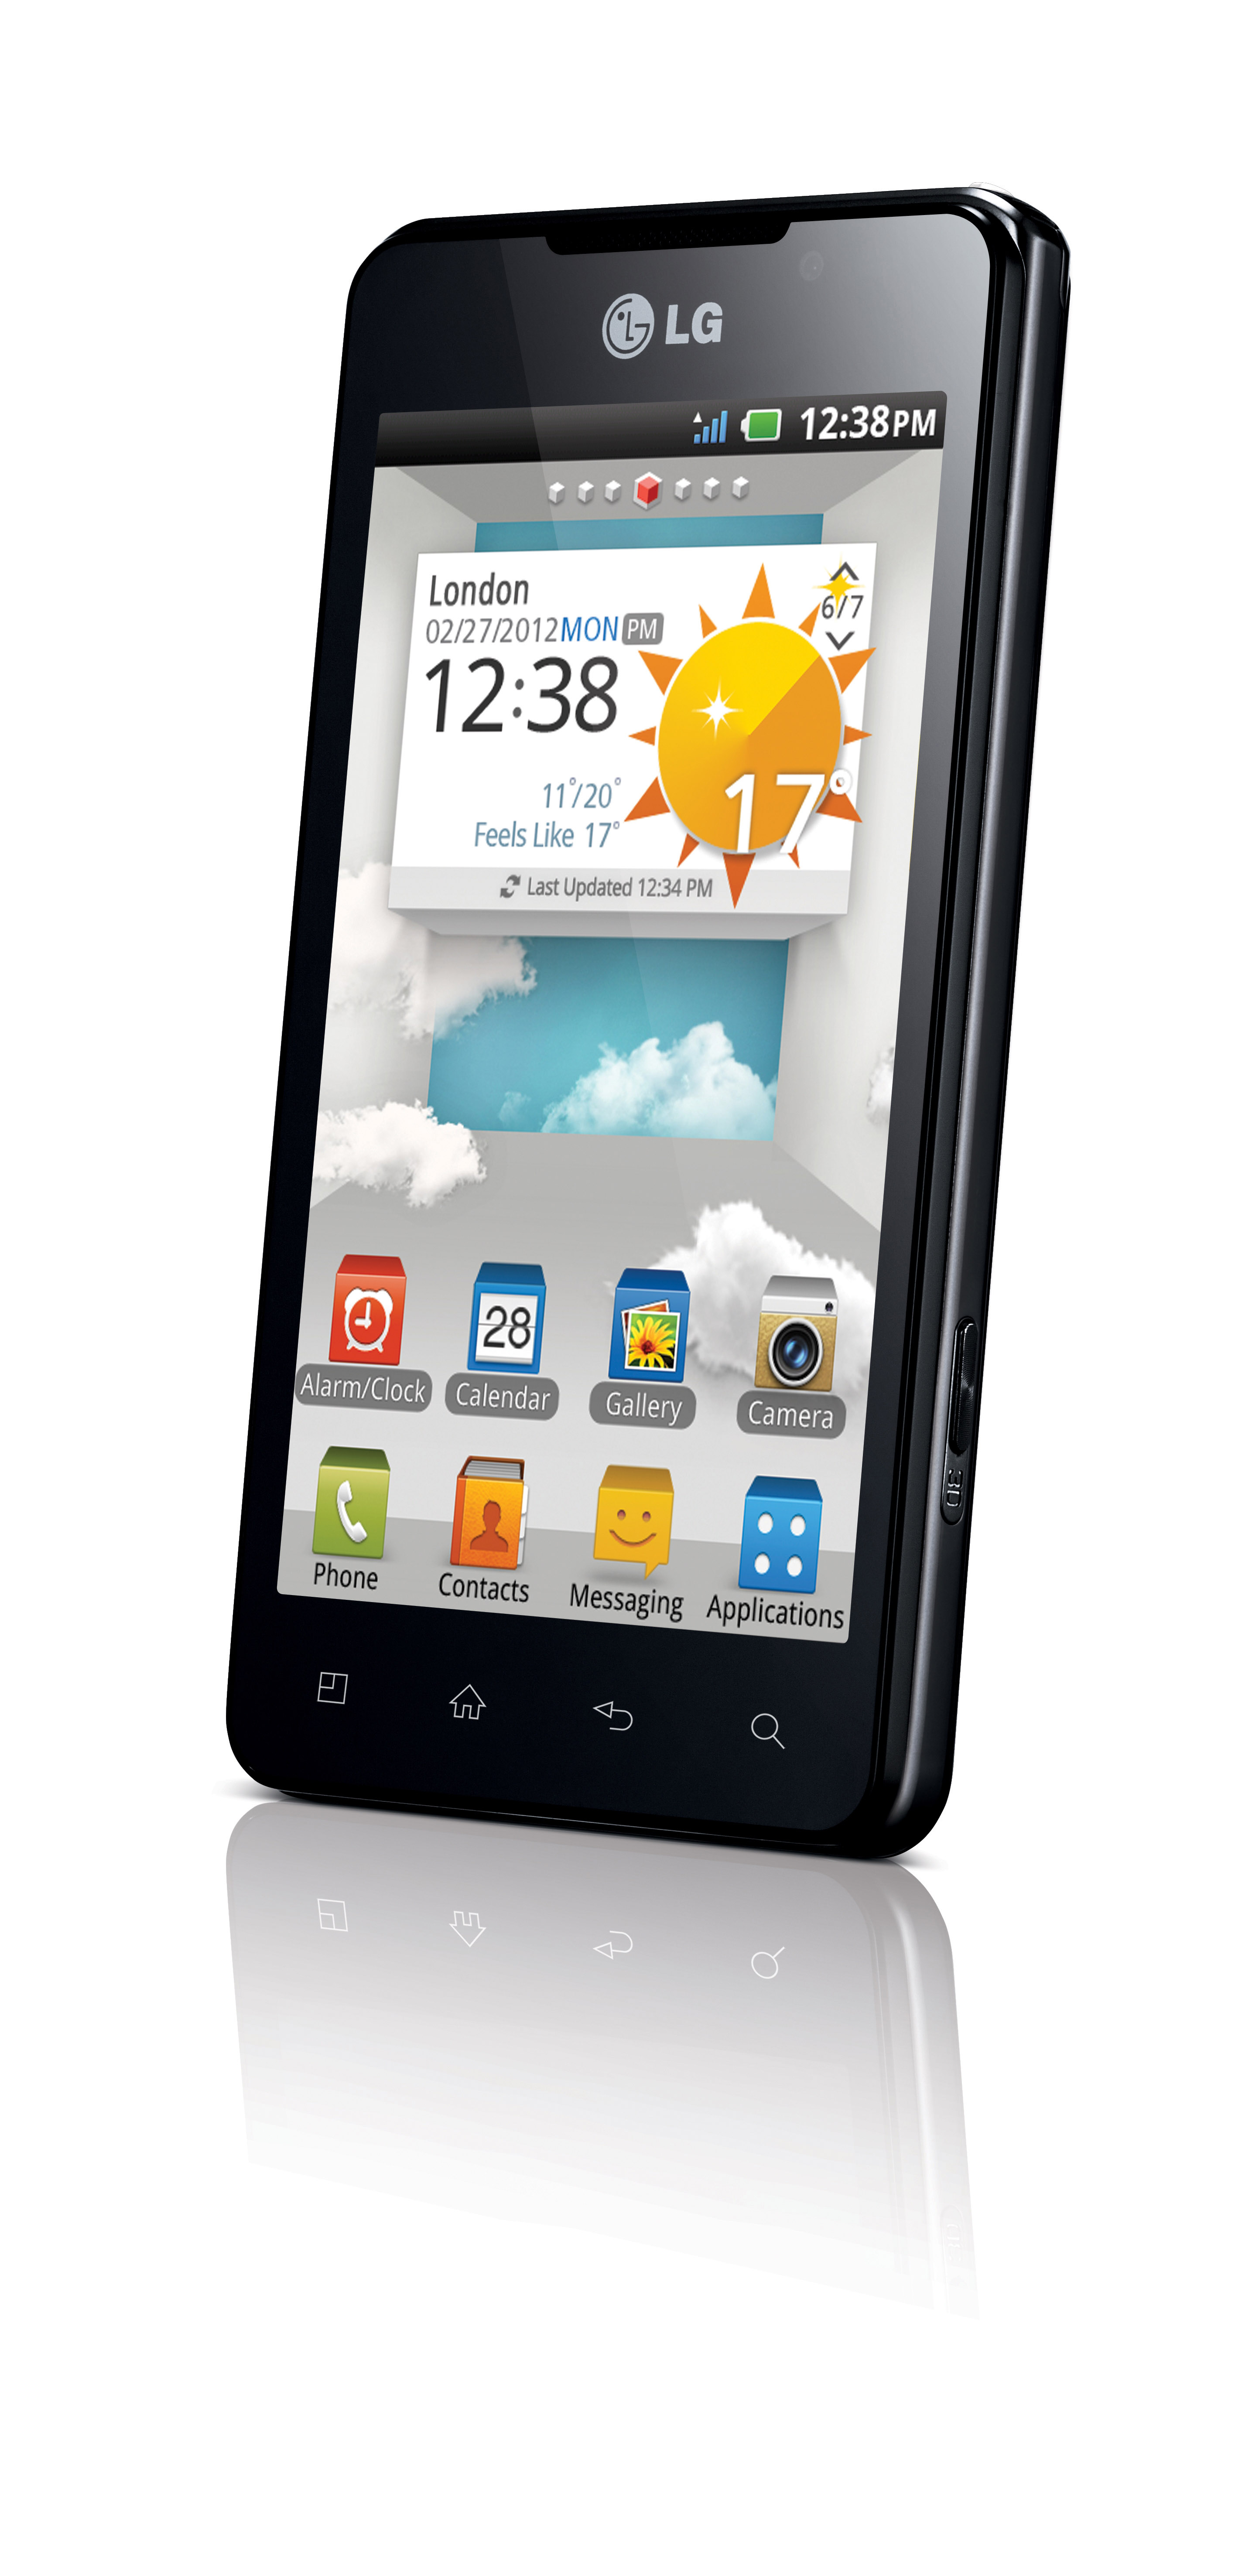 A top view of LG's Optimus 3D Max as if the phone is put on a place vertically while displaying its home screen.